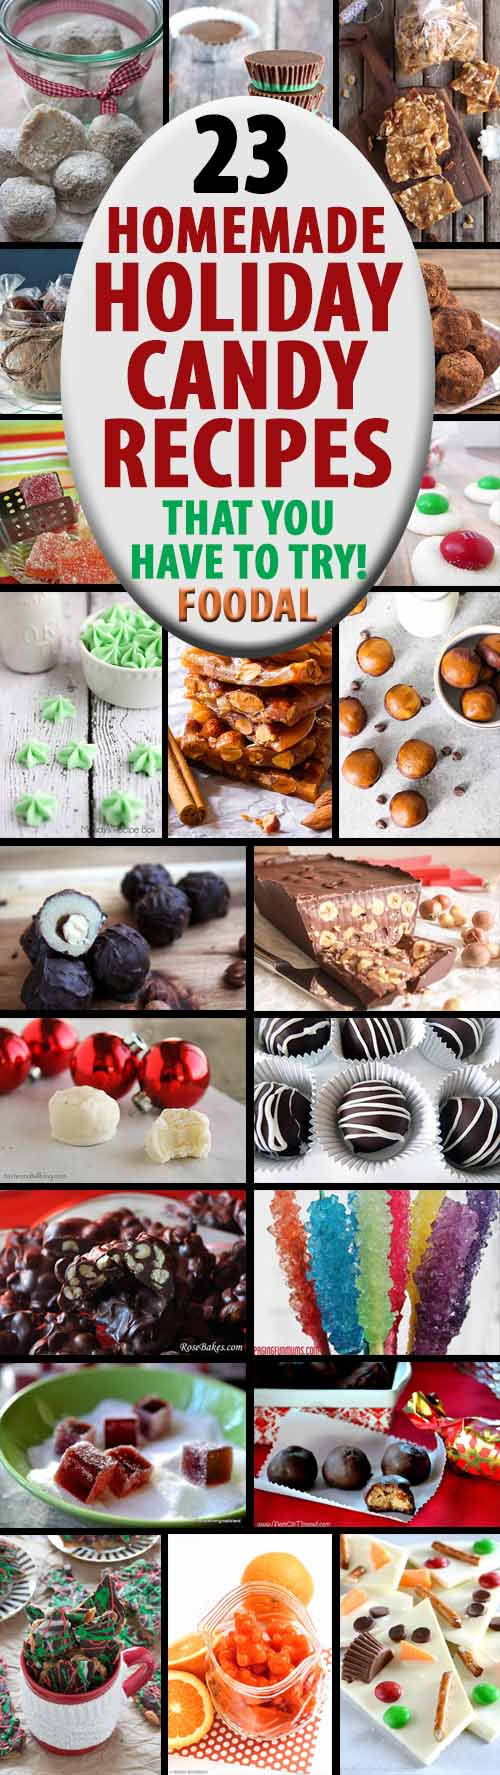 Looking for a nice gift for the neighbors, a fun activity to do with the kids, or something scrumptious to share alongside all the cookies at your office Christmas party? From truffles to toffee and everything in between, we've got your holiday candy making needs covered! Check out 23 of our favorite recipes now on Foodal.